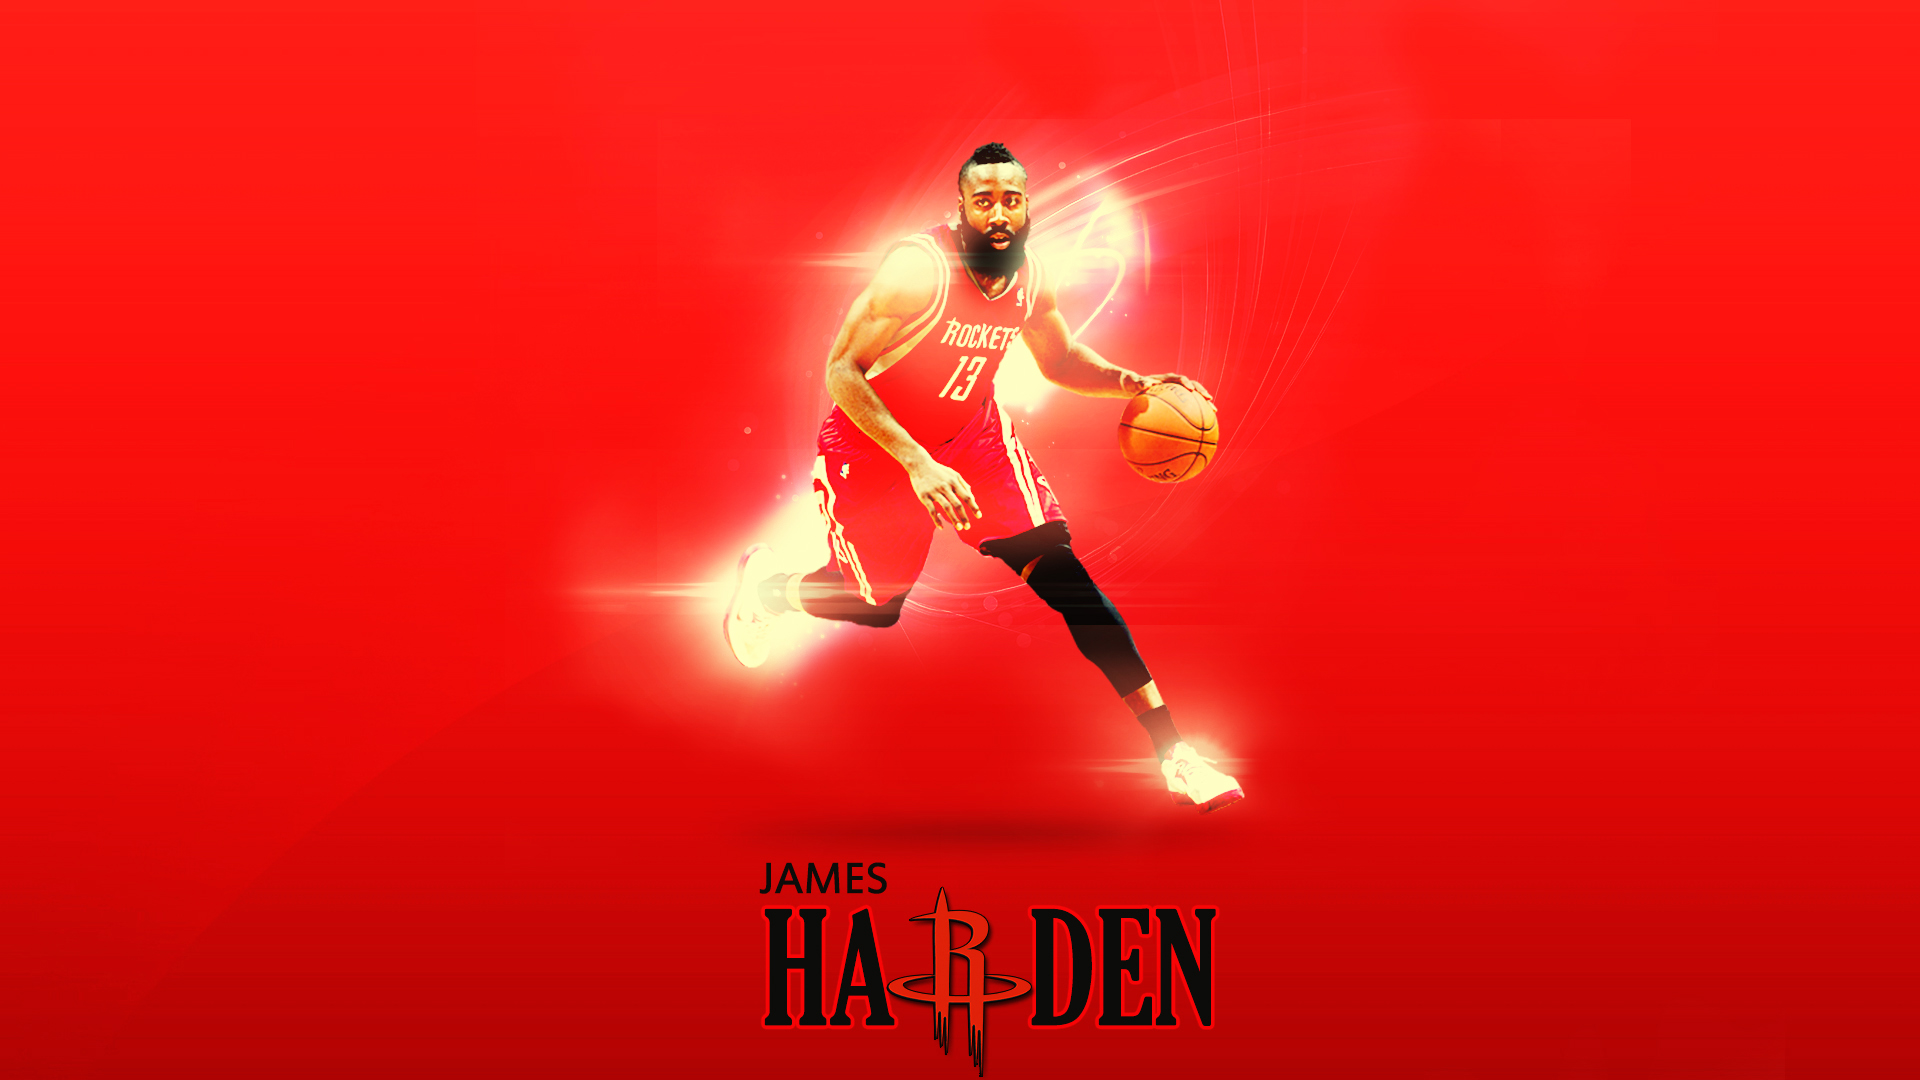 james harden wallpapers high resolution and quality download